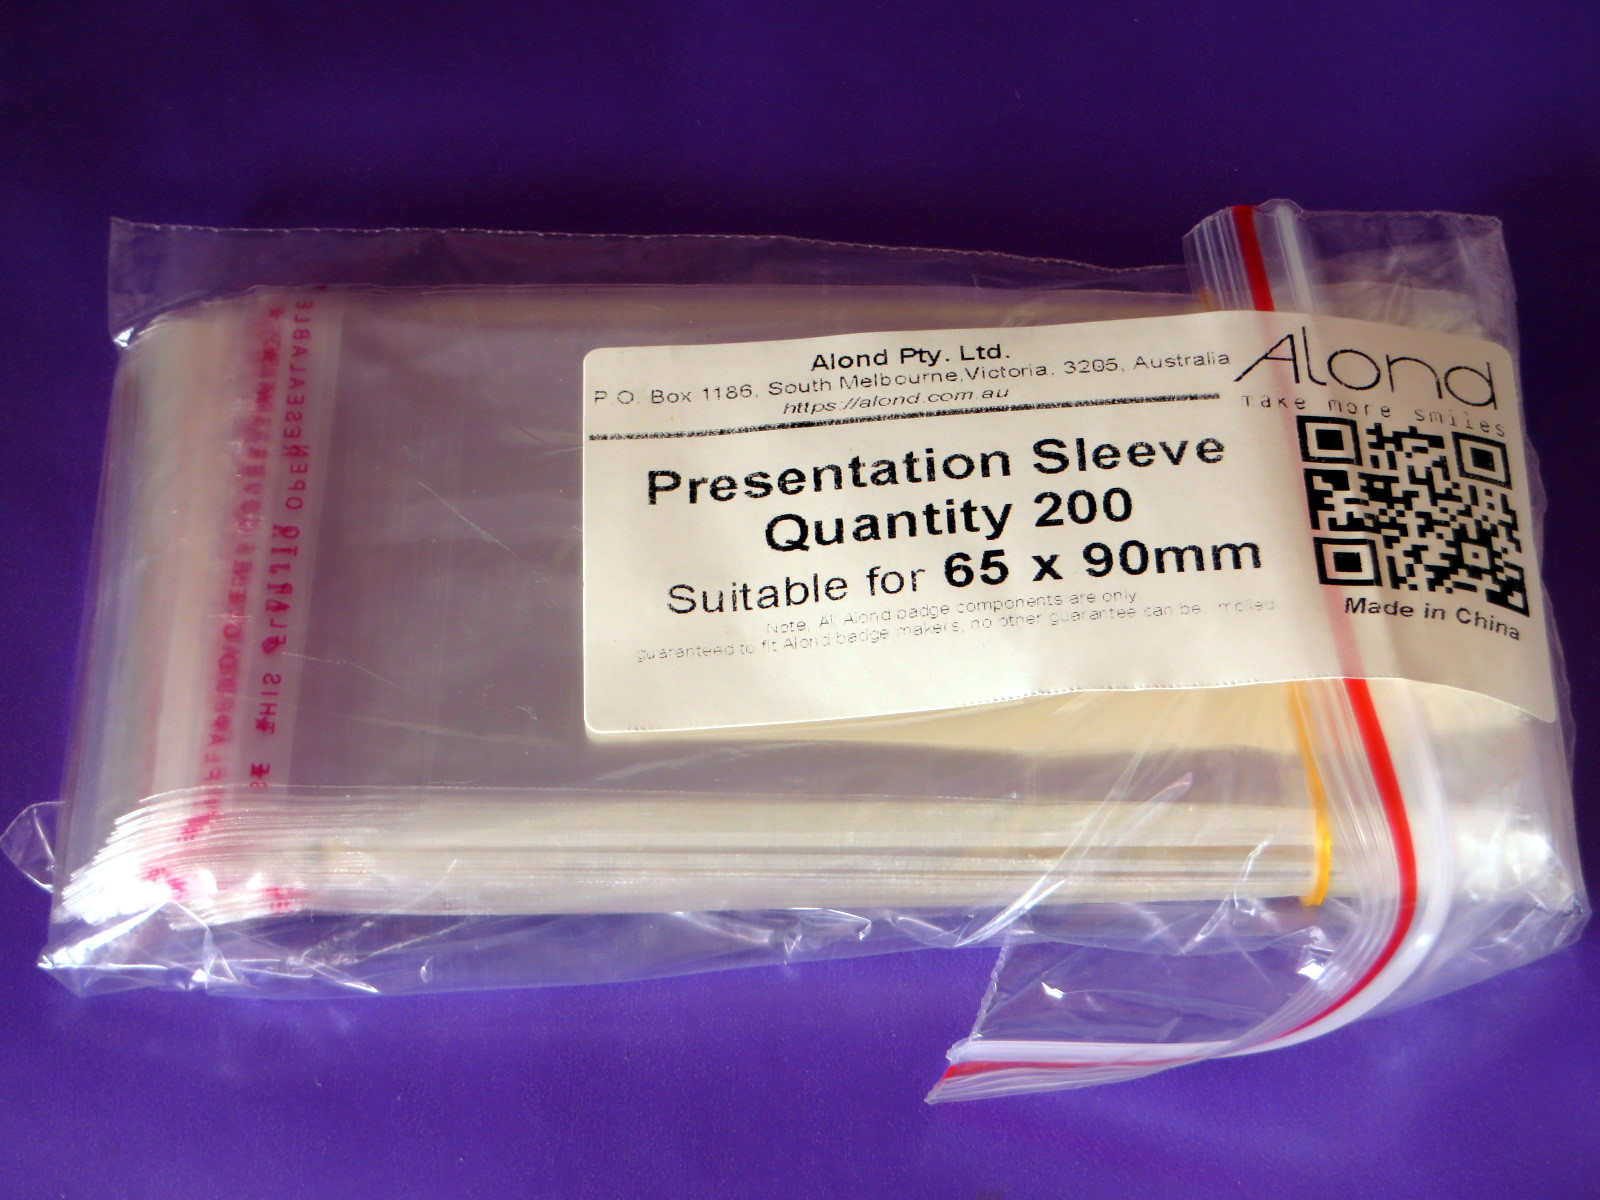 Alond badge presentation sleeve shown within outer package